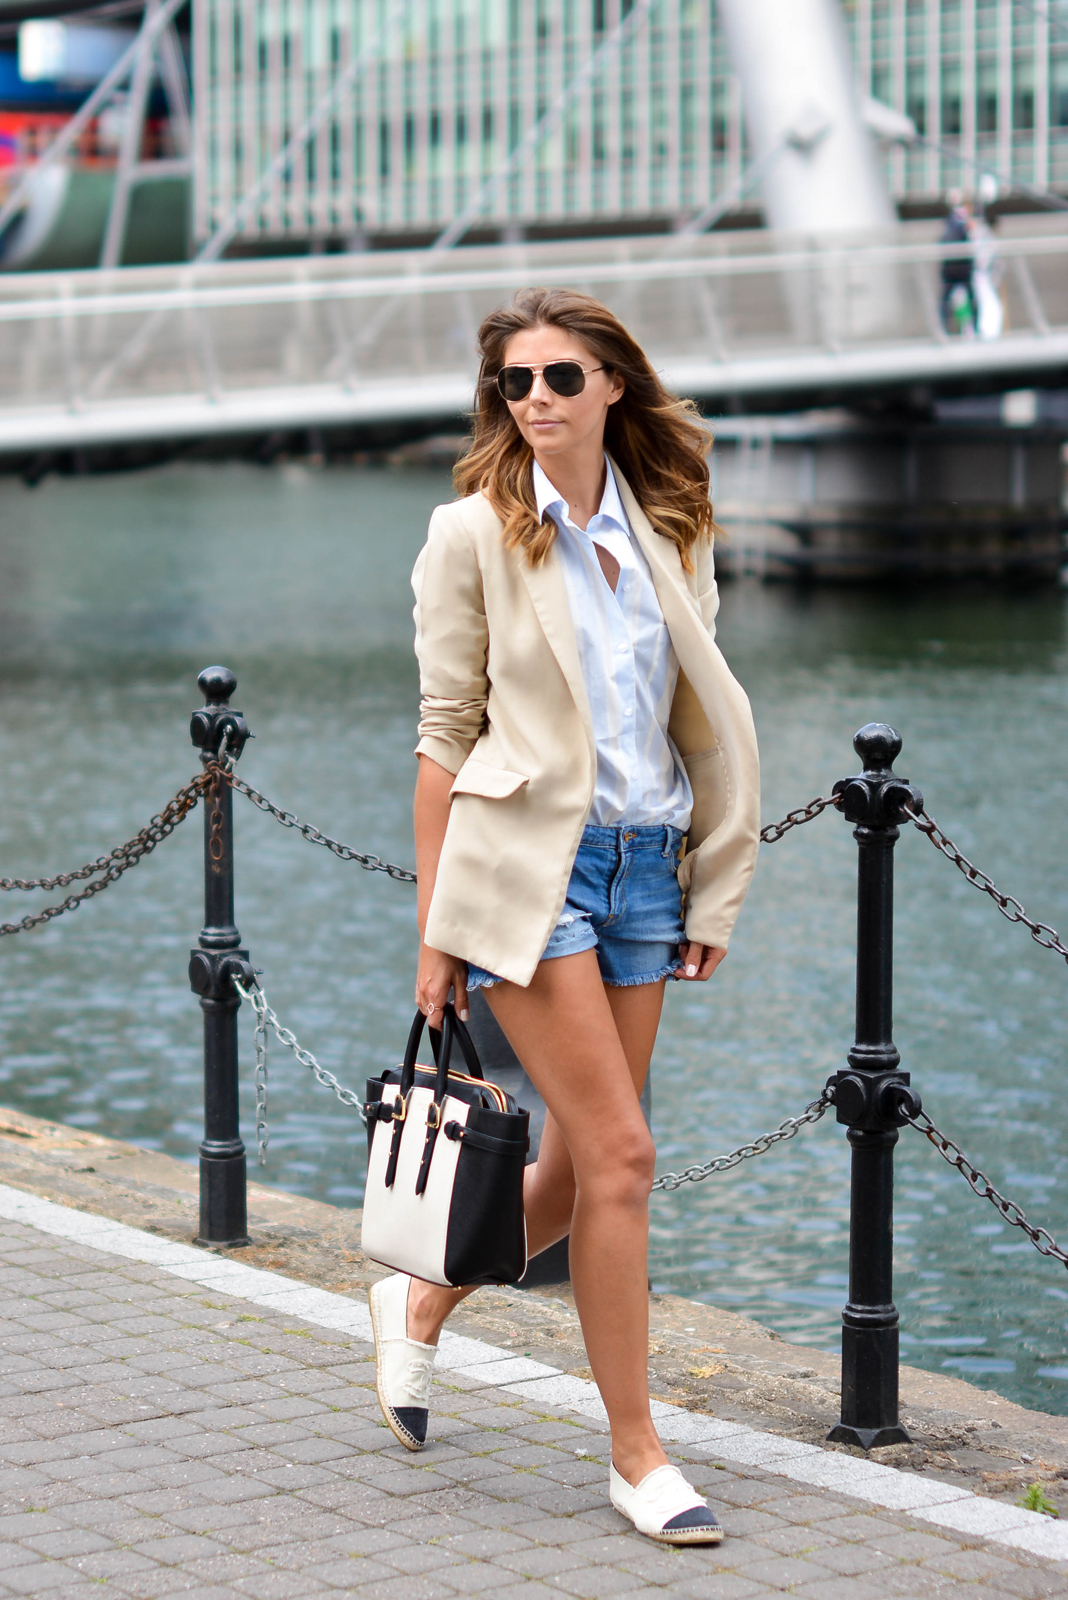 EJSTYLE - Beige long boyfriend blazer, blue stripe ASOS shirt, Denim shorts, Aspinal of London bag, gold aviator sunglasses, Chanel cream canvas espadrilles, summer street style, OOTD